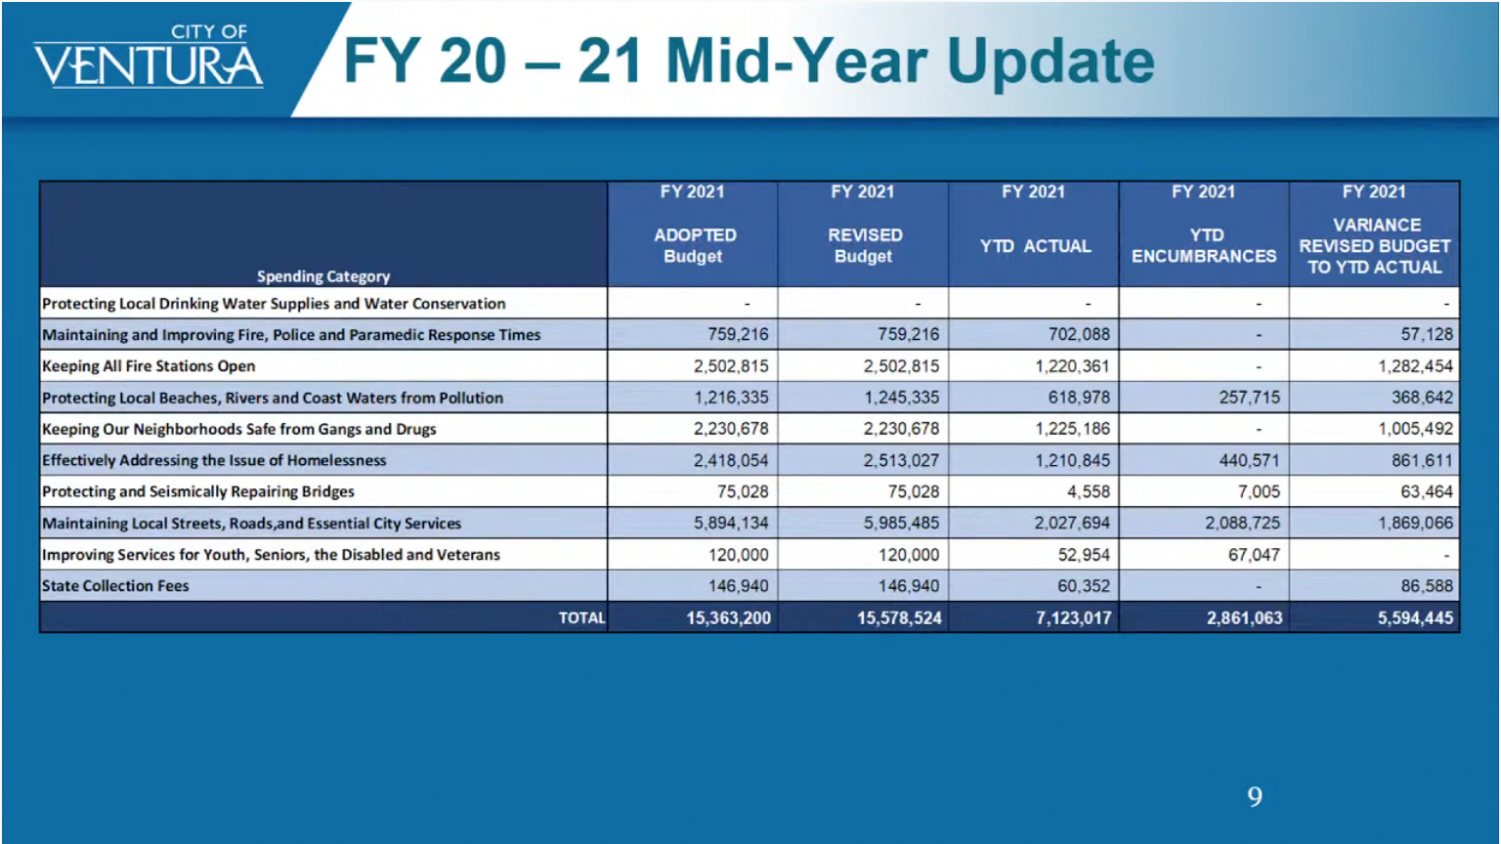 City of Ventura Financial Analysis and Planning Manager Greg Morley presents a powerpoint slide describing the 2020-21 Measure O fiscal year expenditure distribution to the Measure O Citizen Oversight Committee.